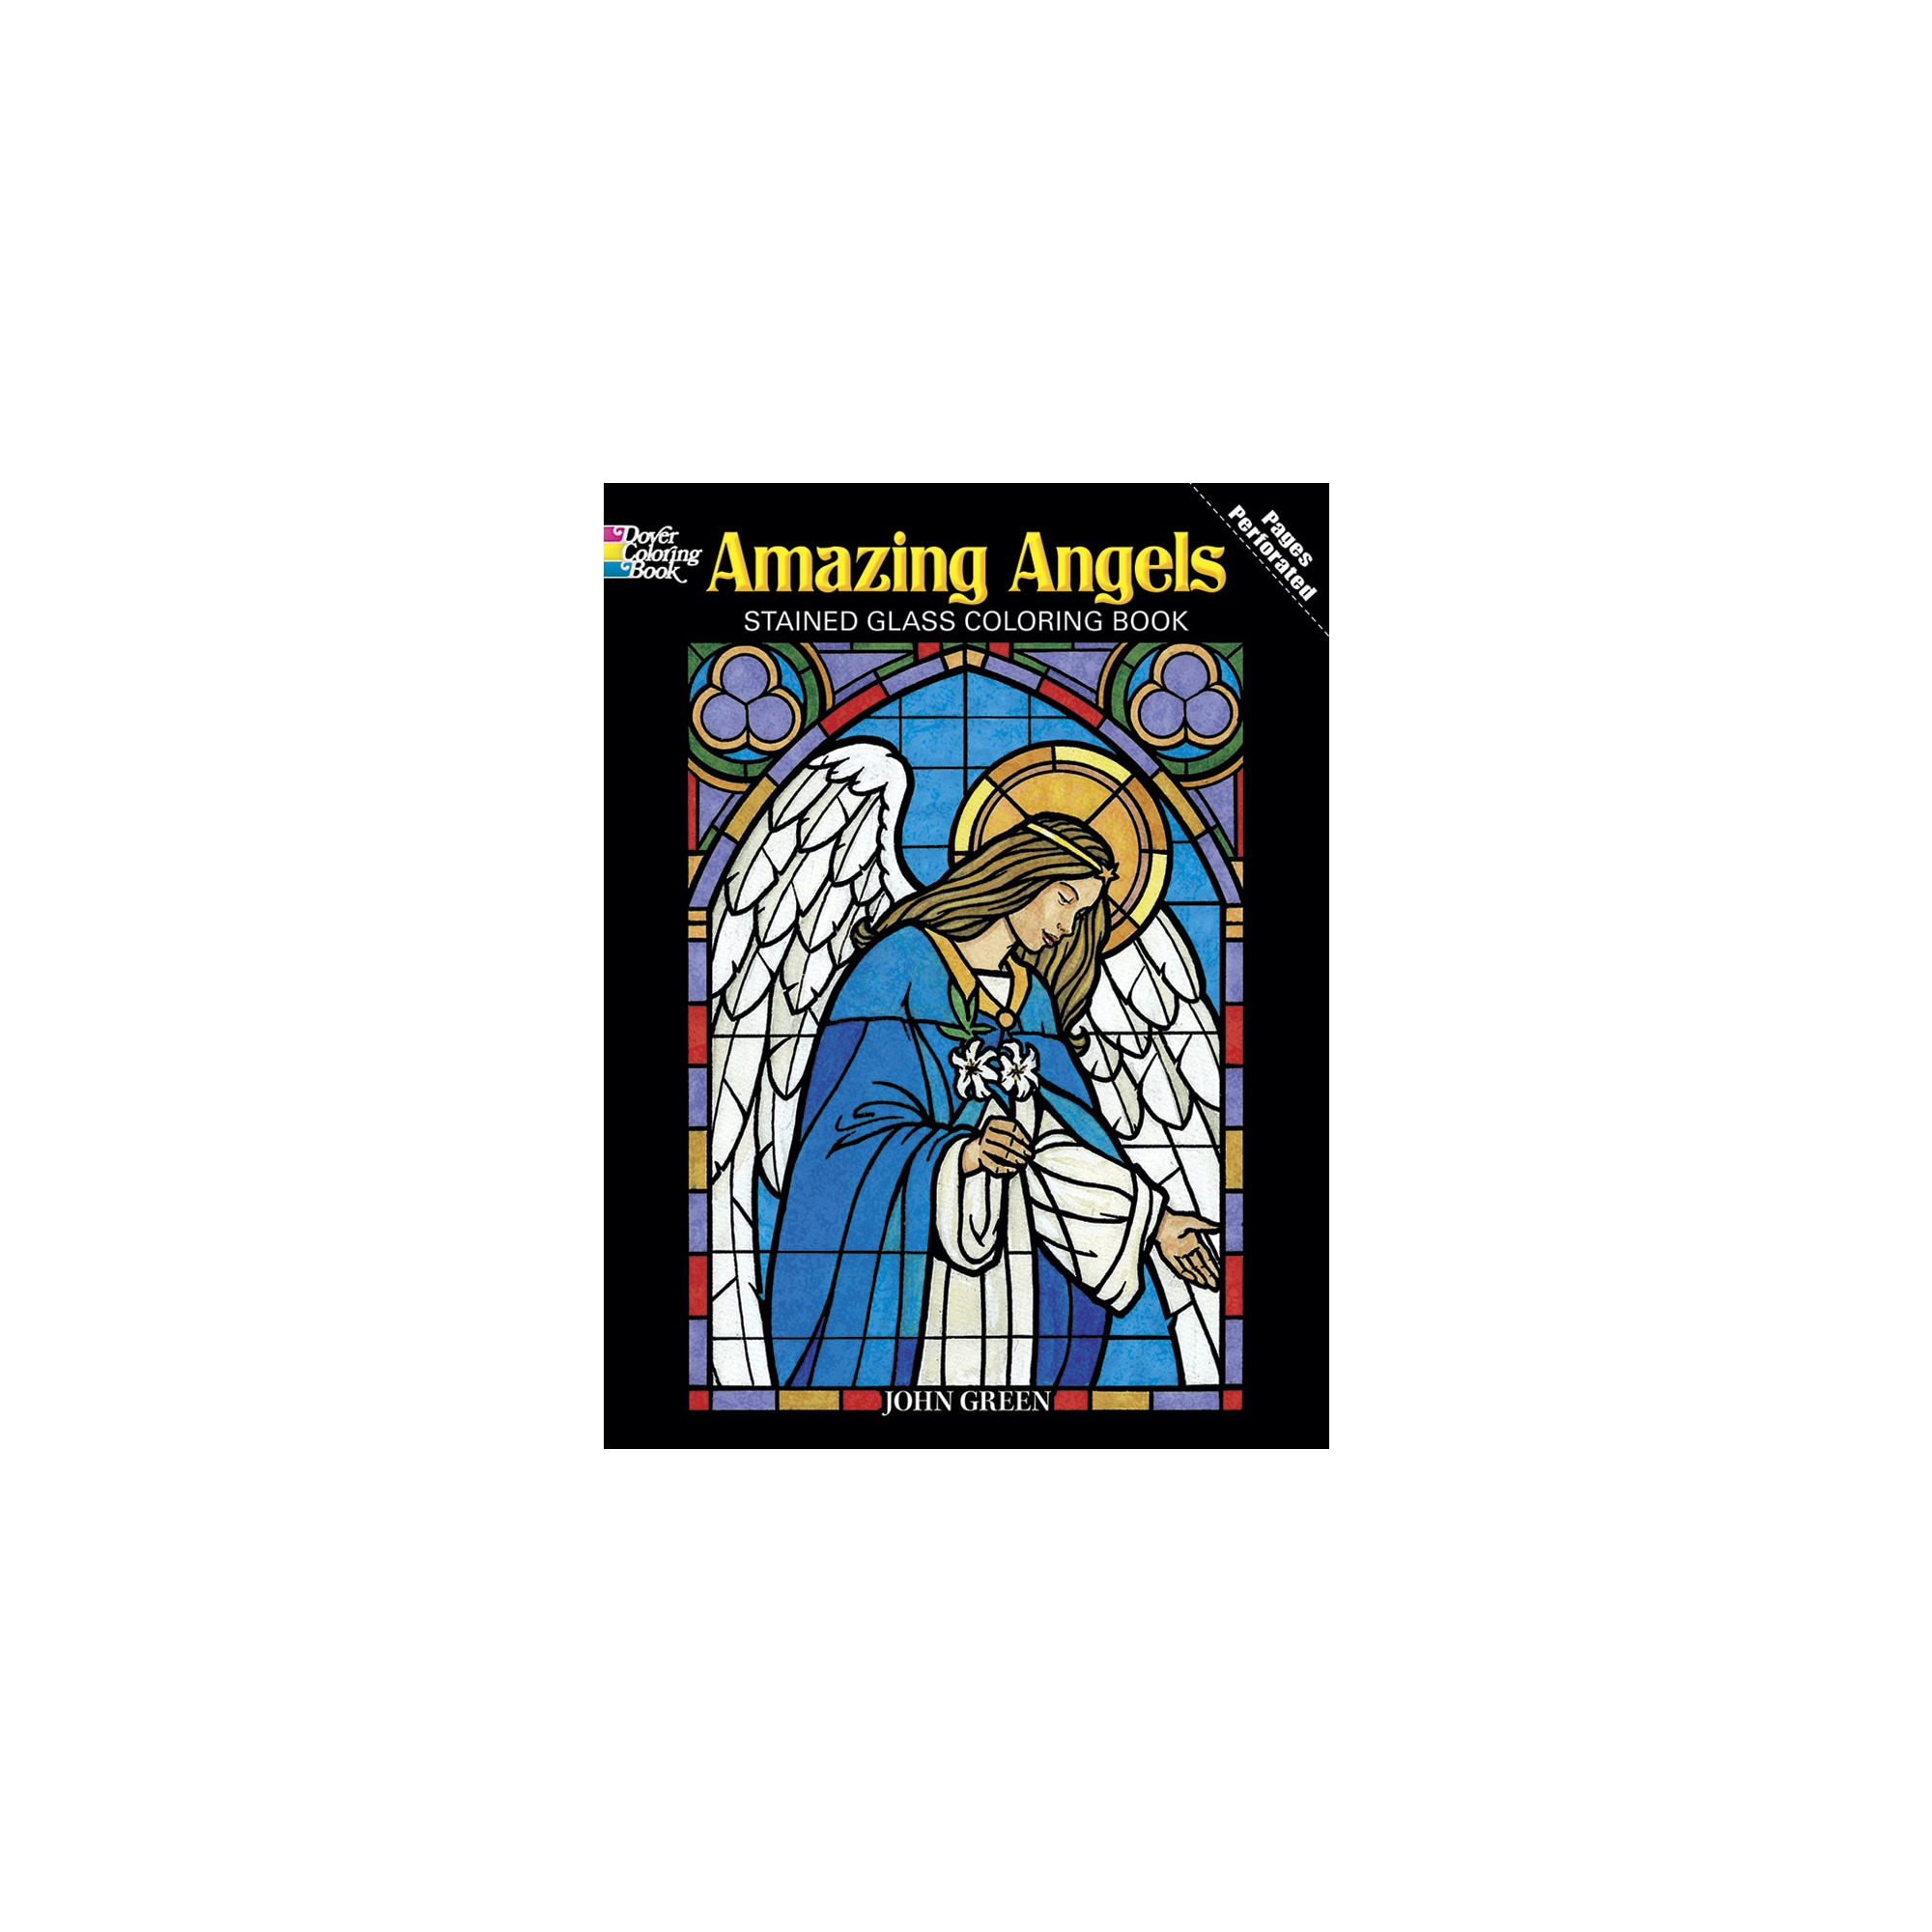 Amazing Angels Stained Glass Coloring Book | The Catholic Company